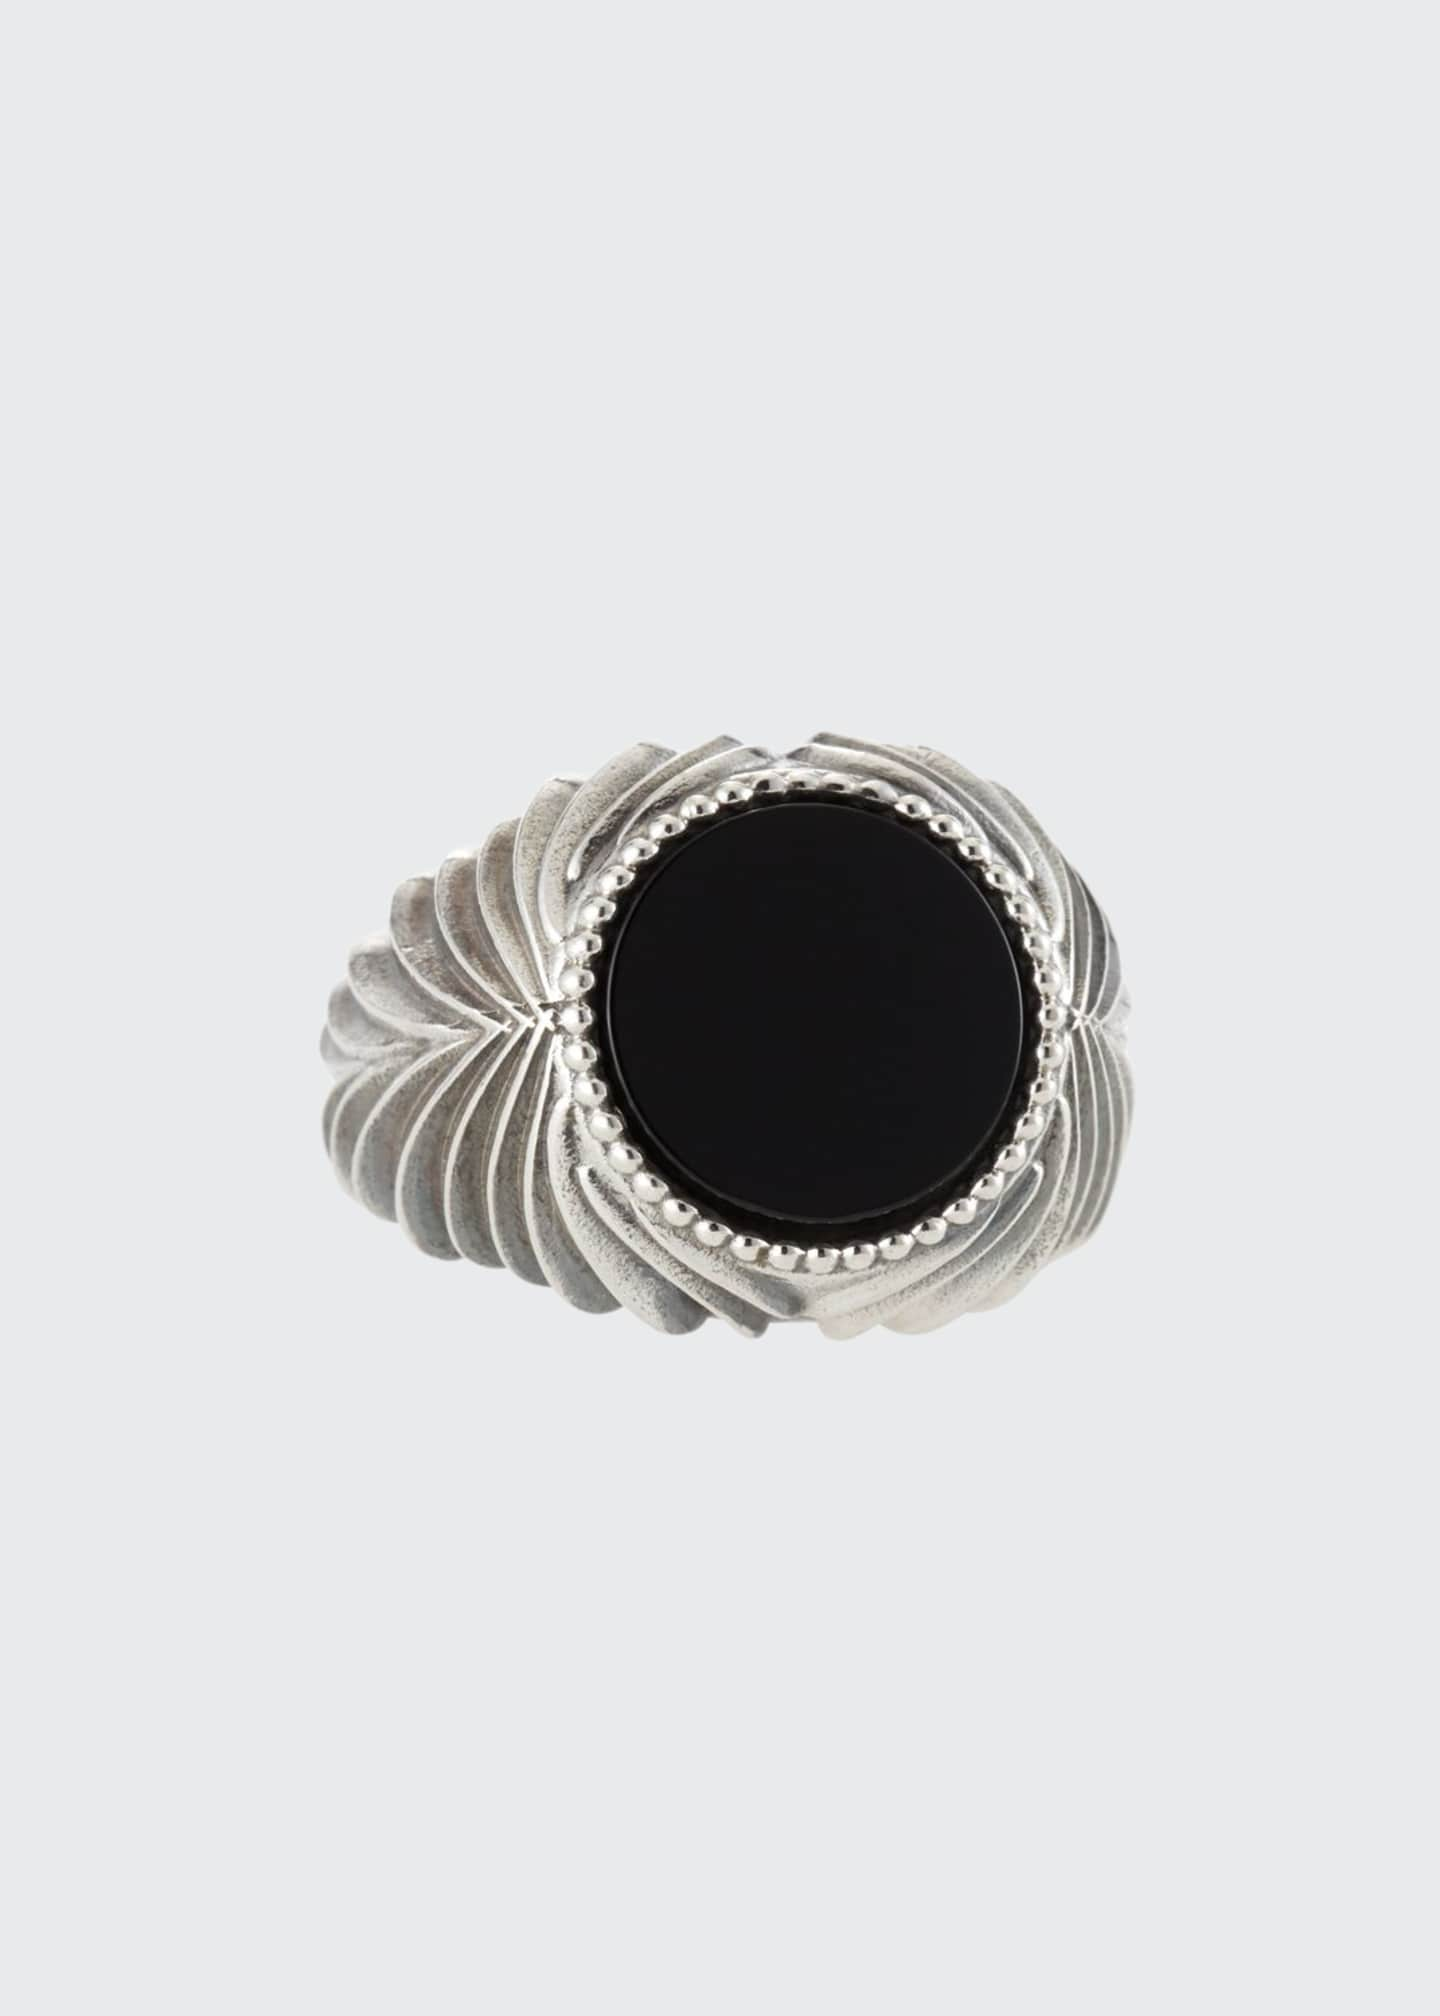 Image 1 of 2: Men's Feathered Black Onyx Ring